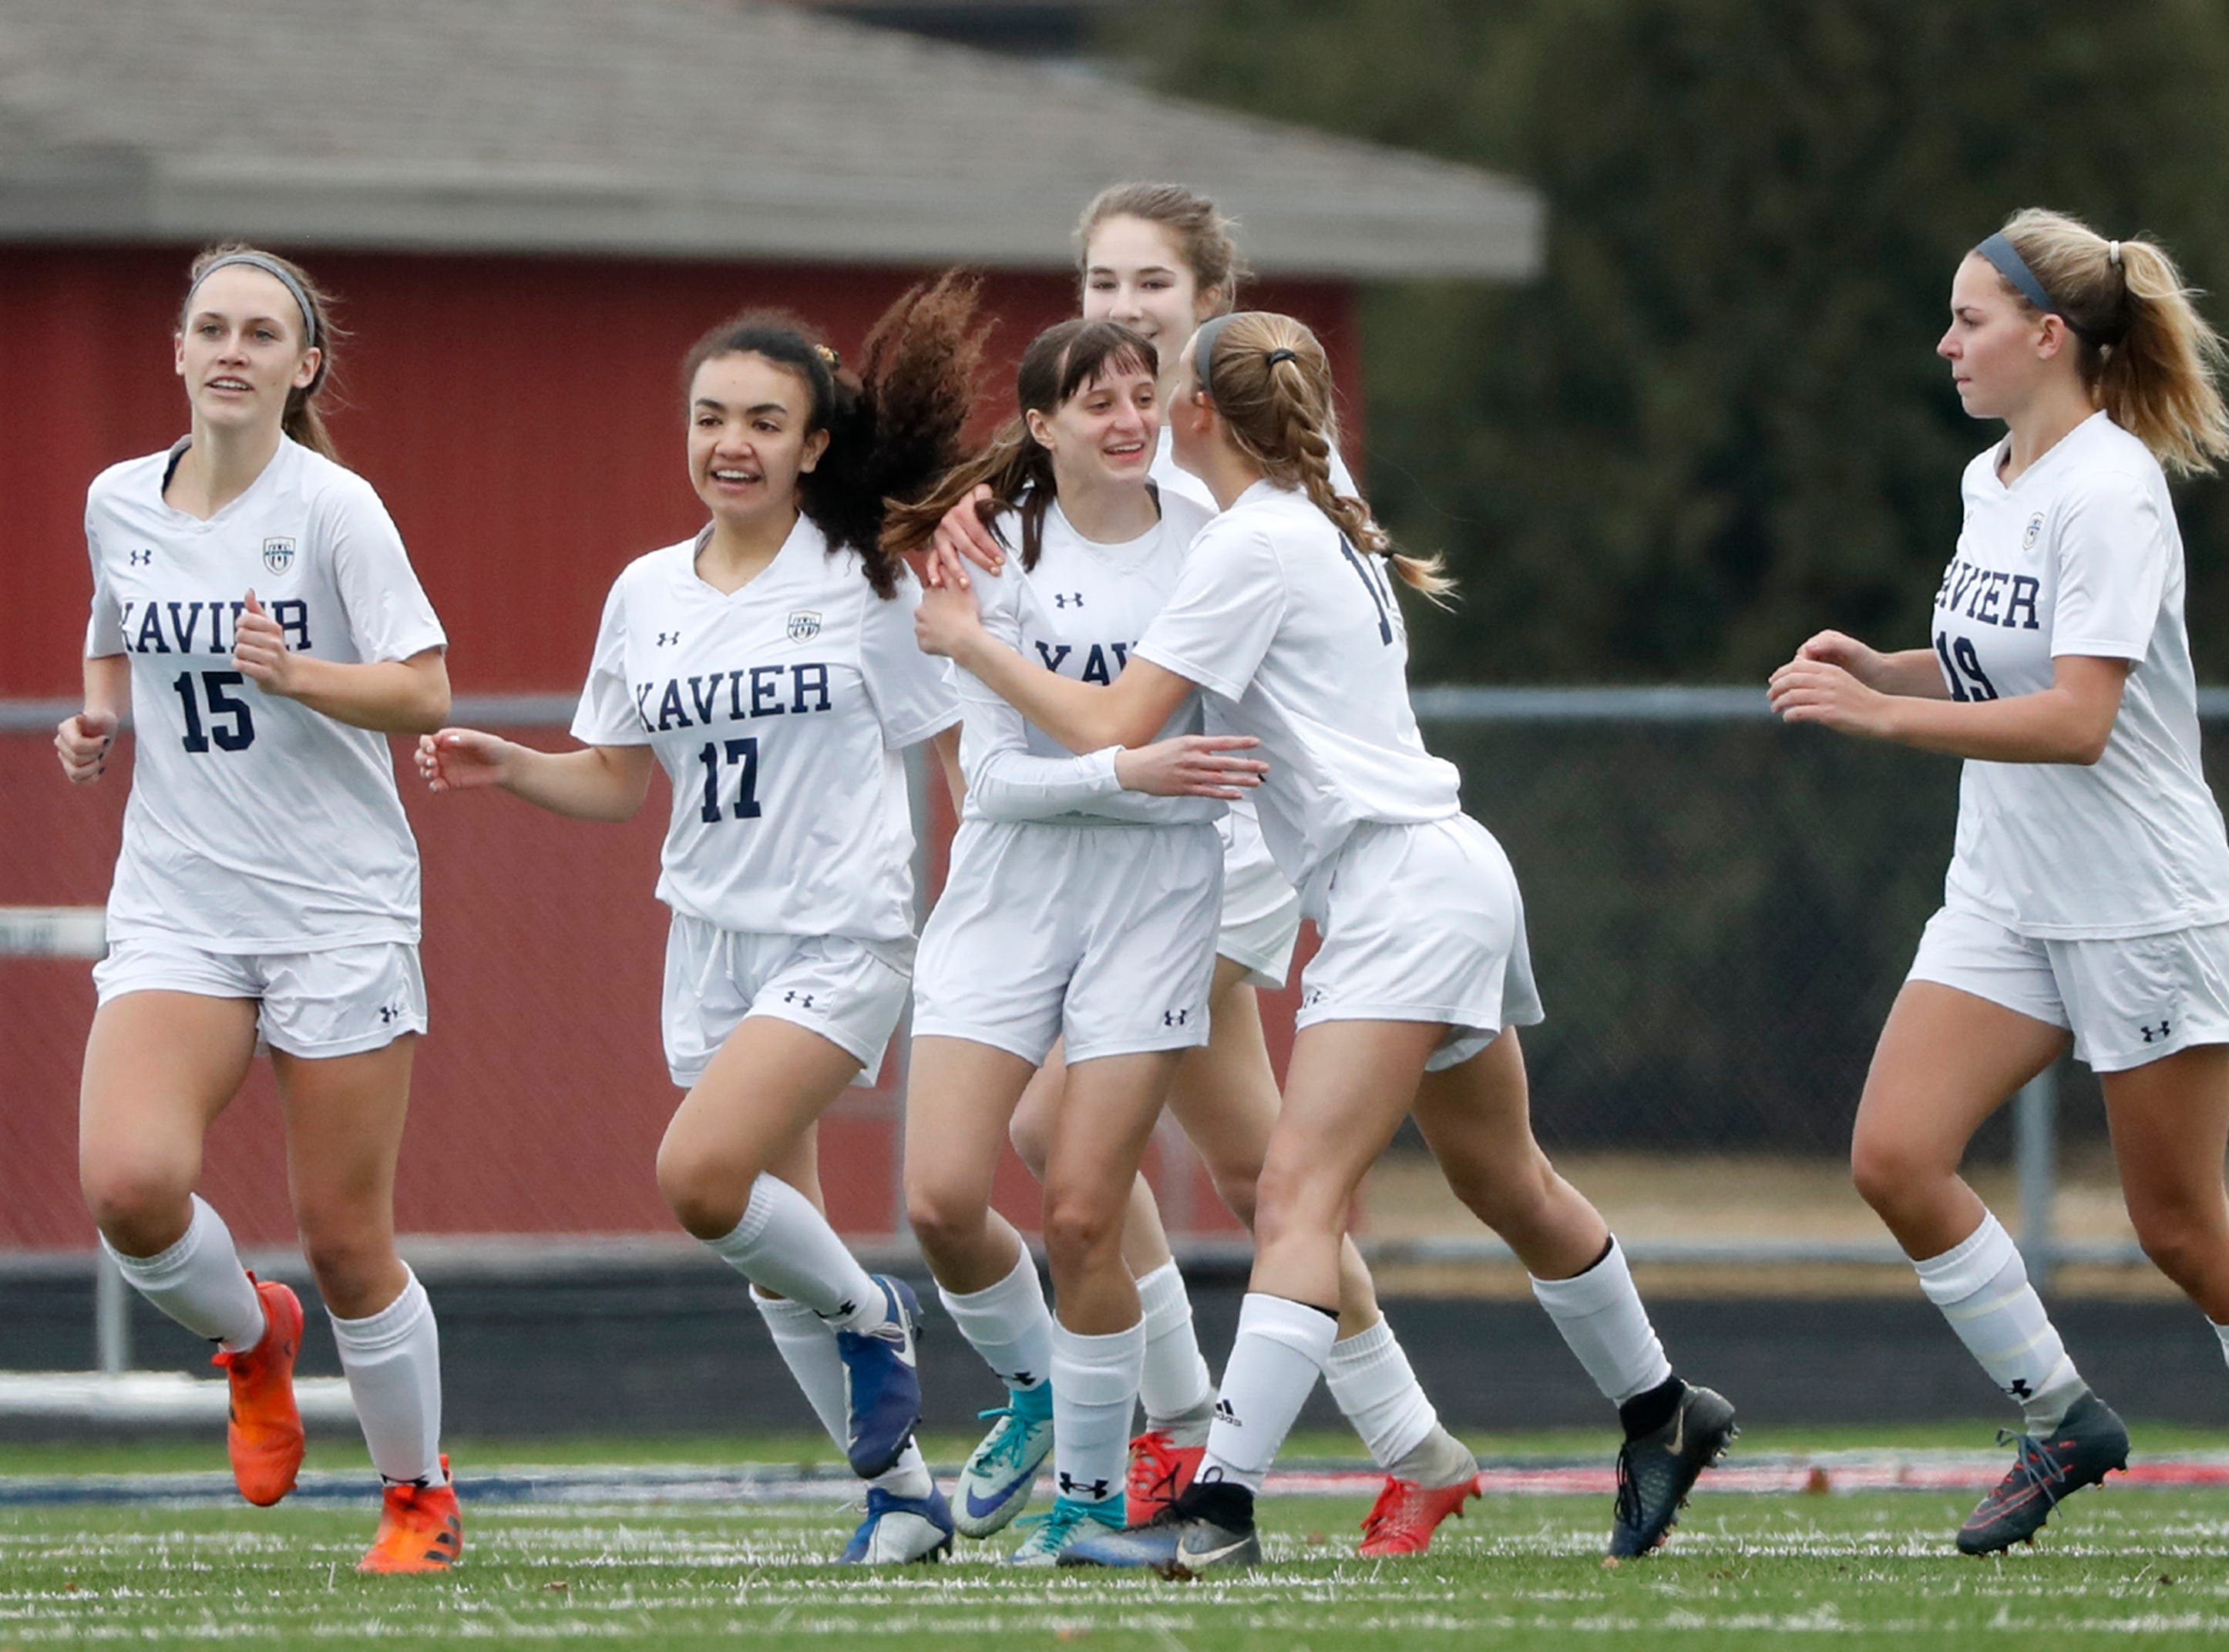 Xavier High School's Alli Matzek (center) celebrates with teammates after scoring against Appleton East High School Friday, April 5, 2019, in Appleton, Wis. Danny Damiani/USA TODAY NETWORK-Wisconsin